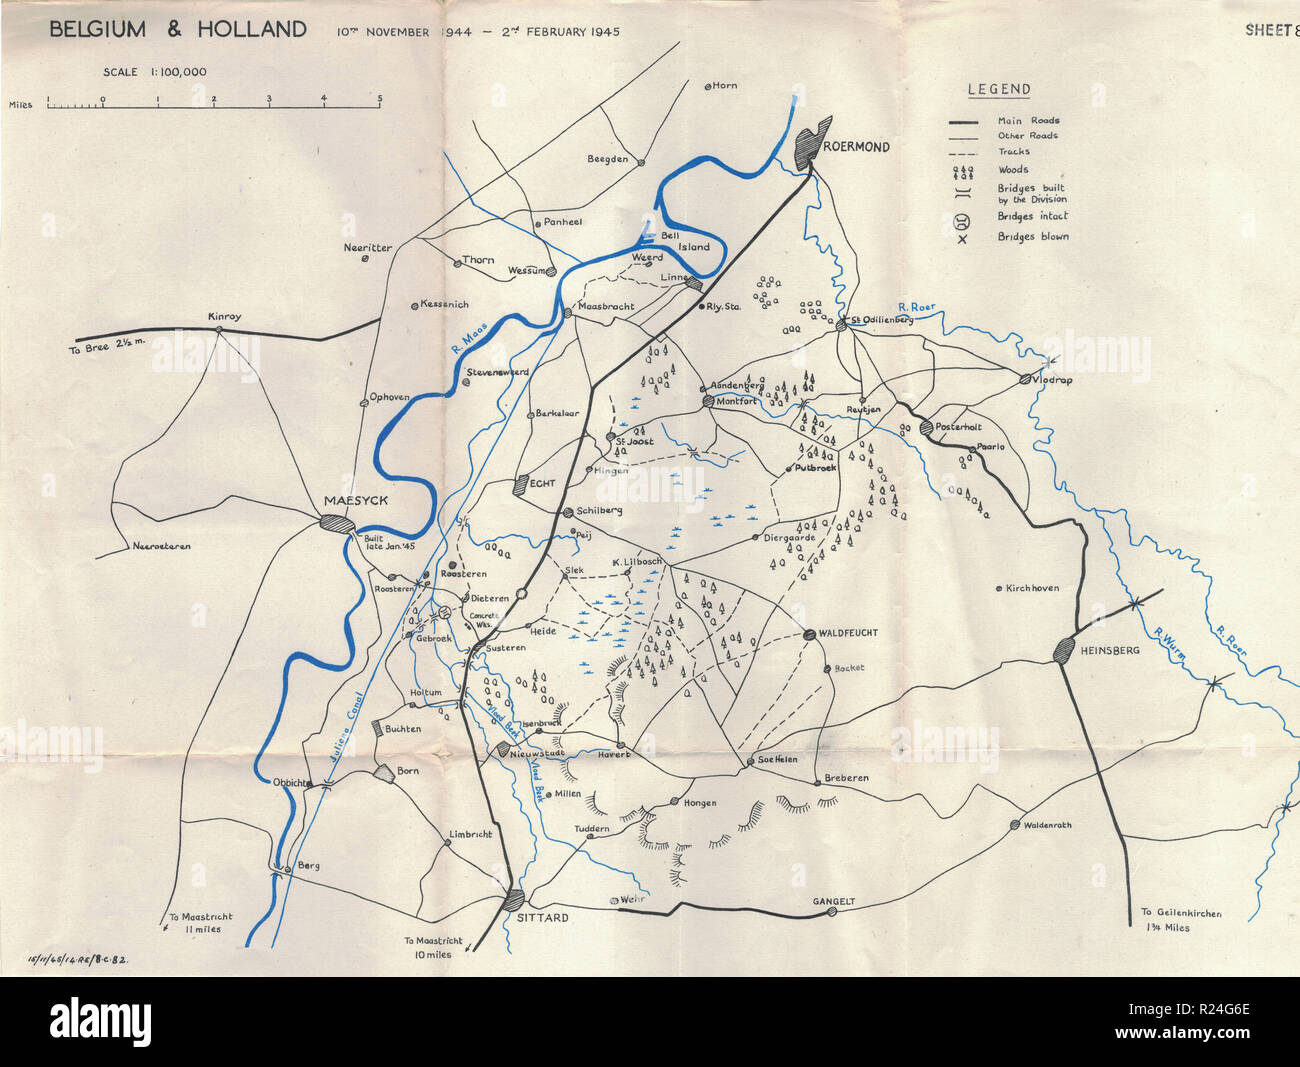 World War 2 European Campaign Maps 1945, Belgium and Holland Stock ...